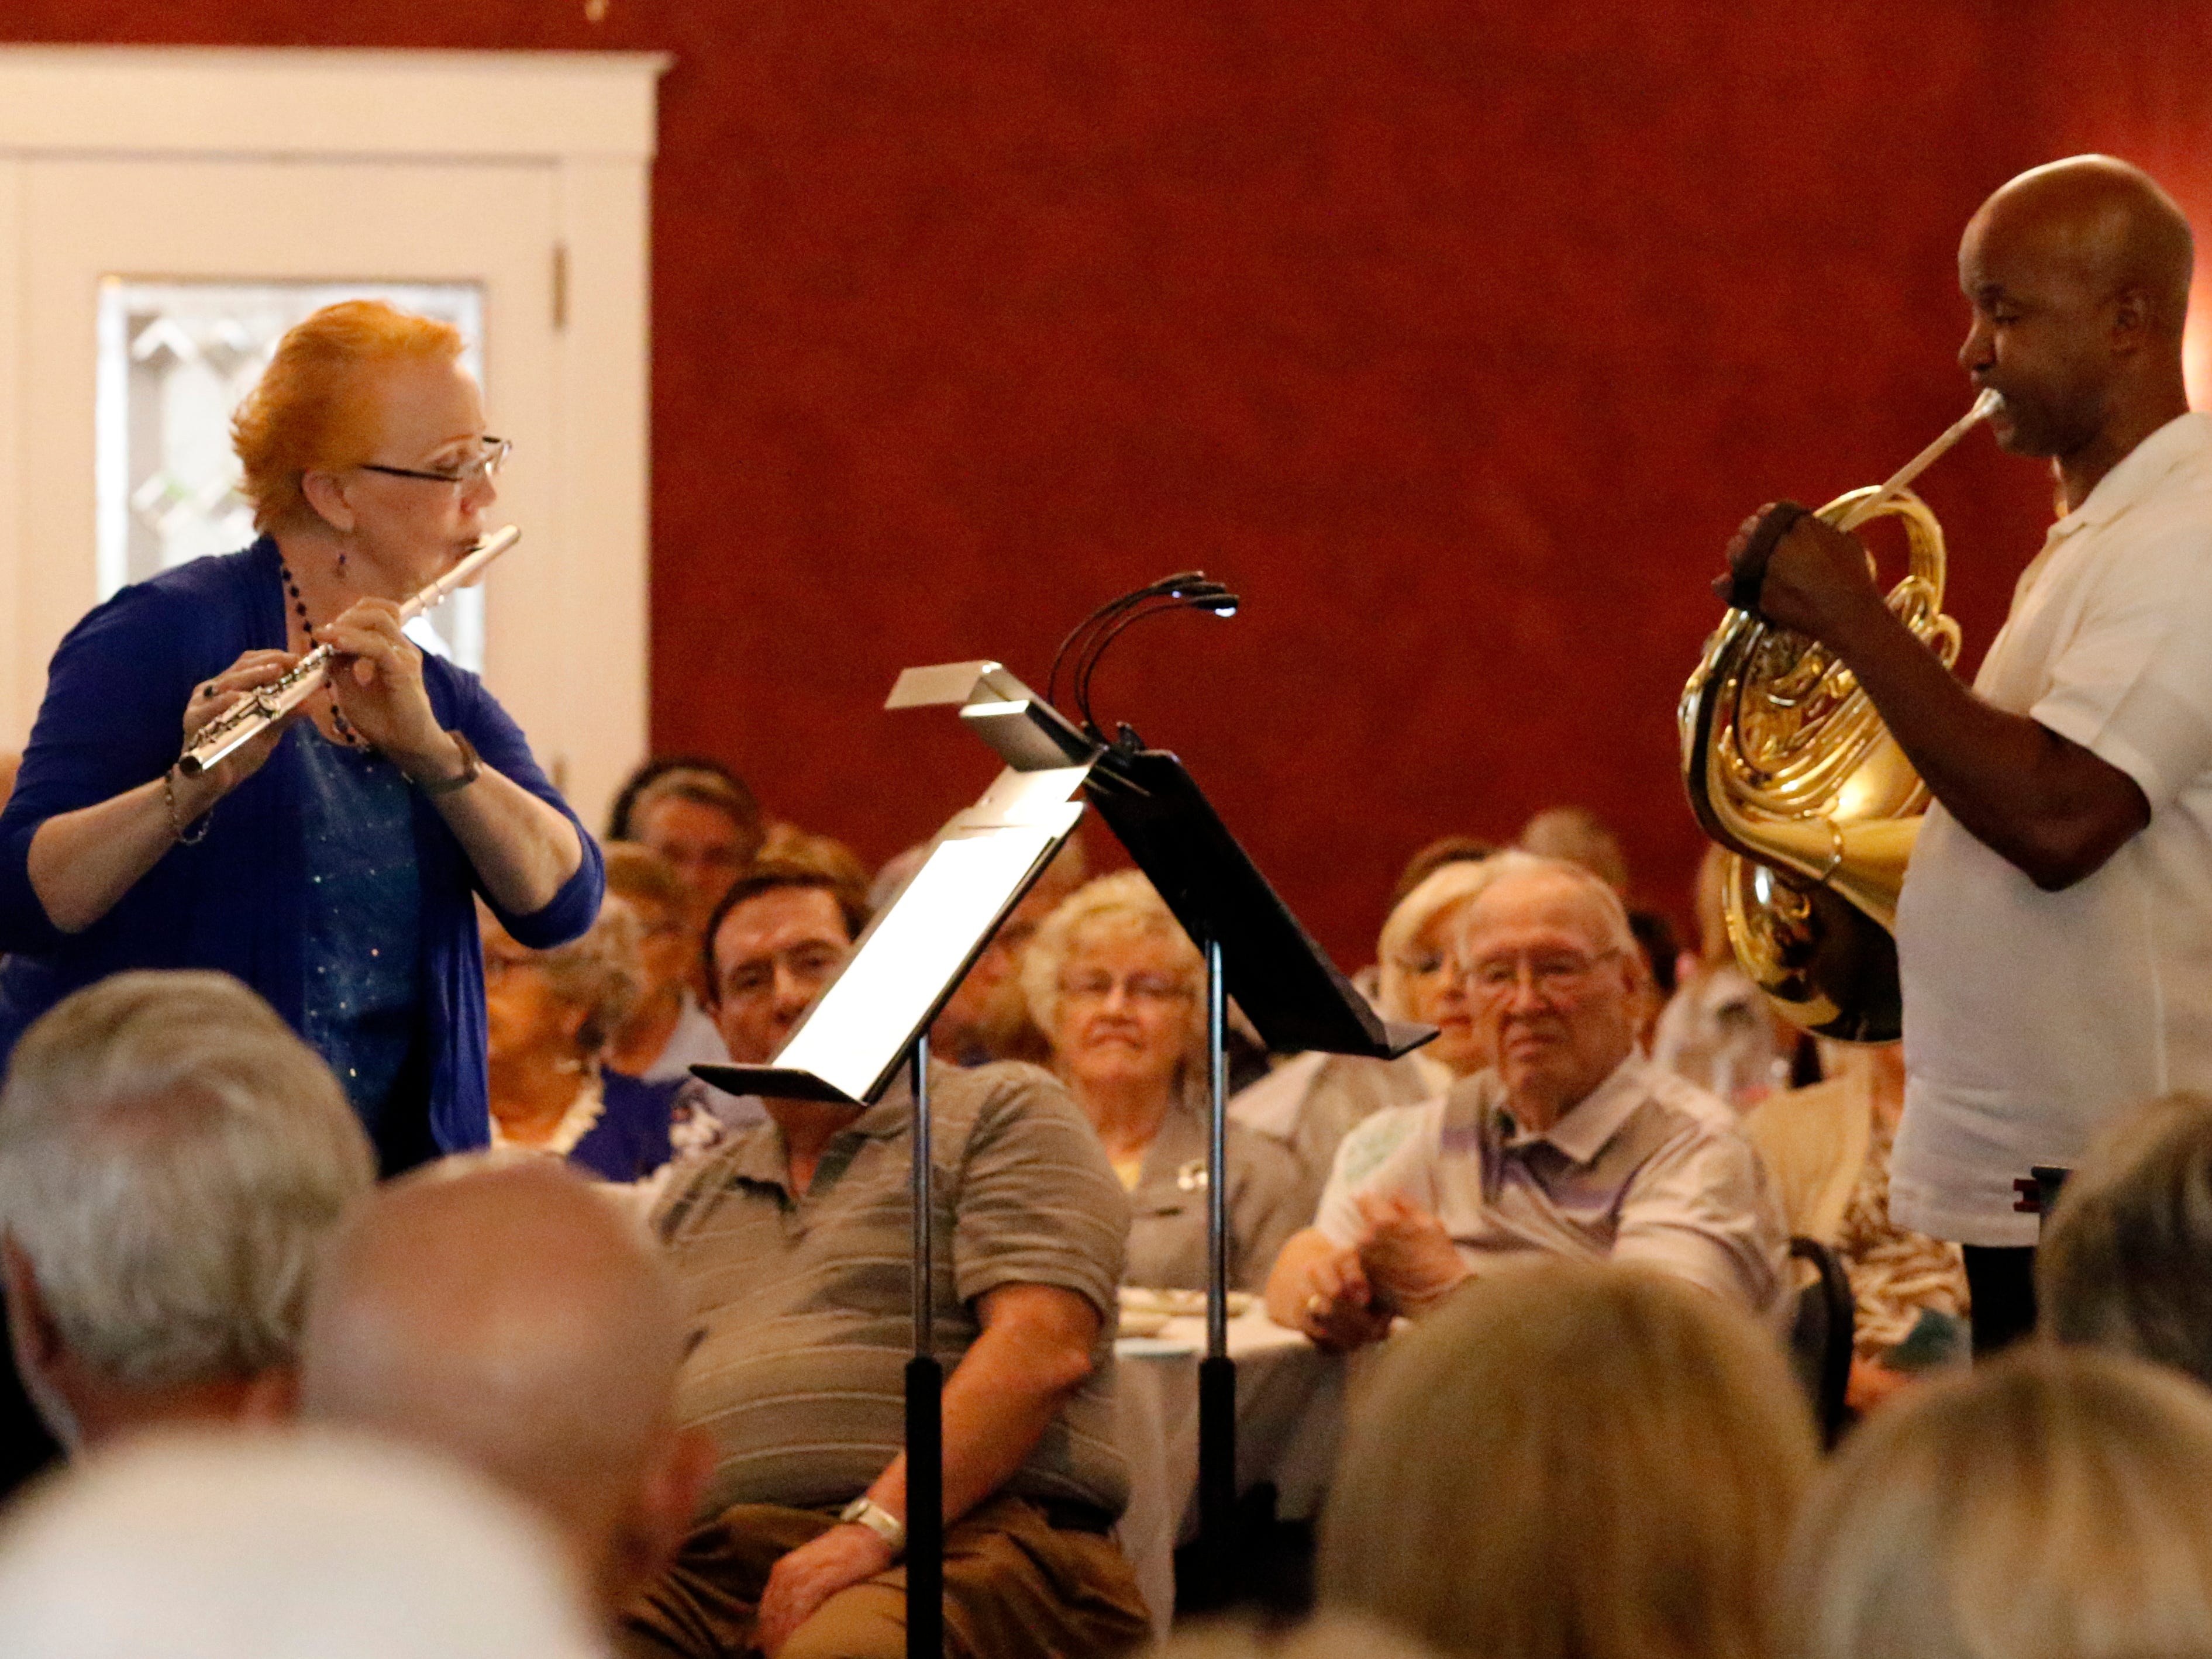 Margaret Swinchoski, left, and Joseph Lovinsky perform Friday afternoon, July 27, 2018, during a Lancaster Festival Cafe Concert at the Lancaster Country Club in Hocking Township. The concert featured principal members from different sections of the Lancaster Festival Orchestra.